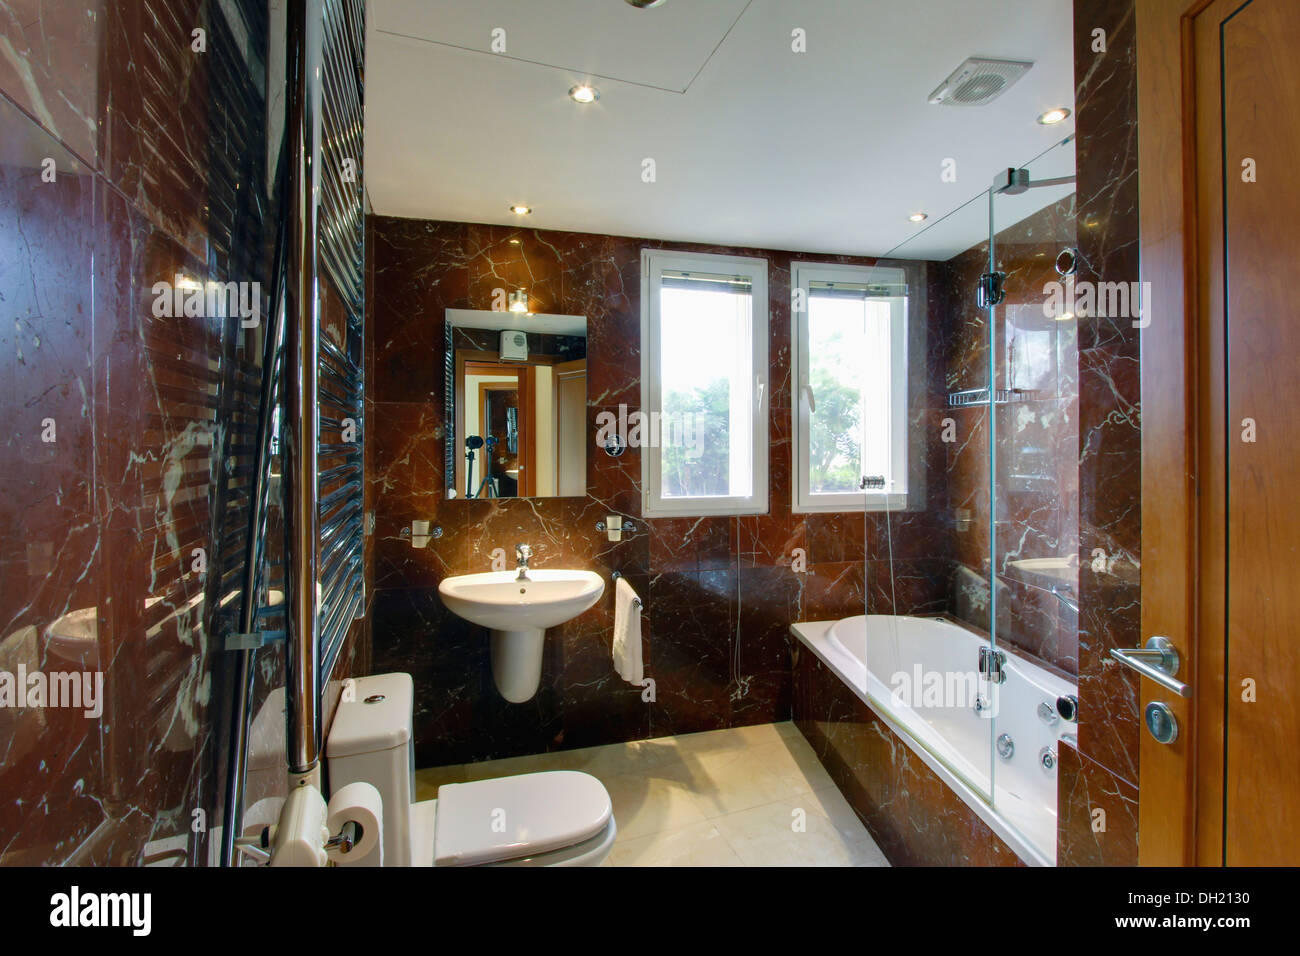 Bathroom In Spanish Modern Brown Marble Spanish Bathroom With Lighted Mirror Above